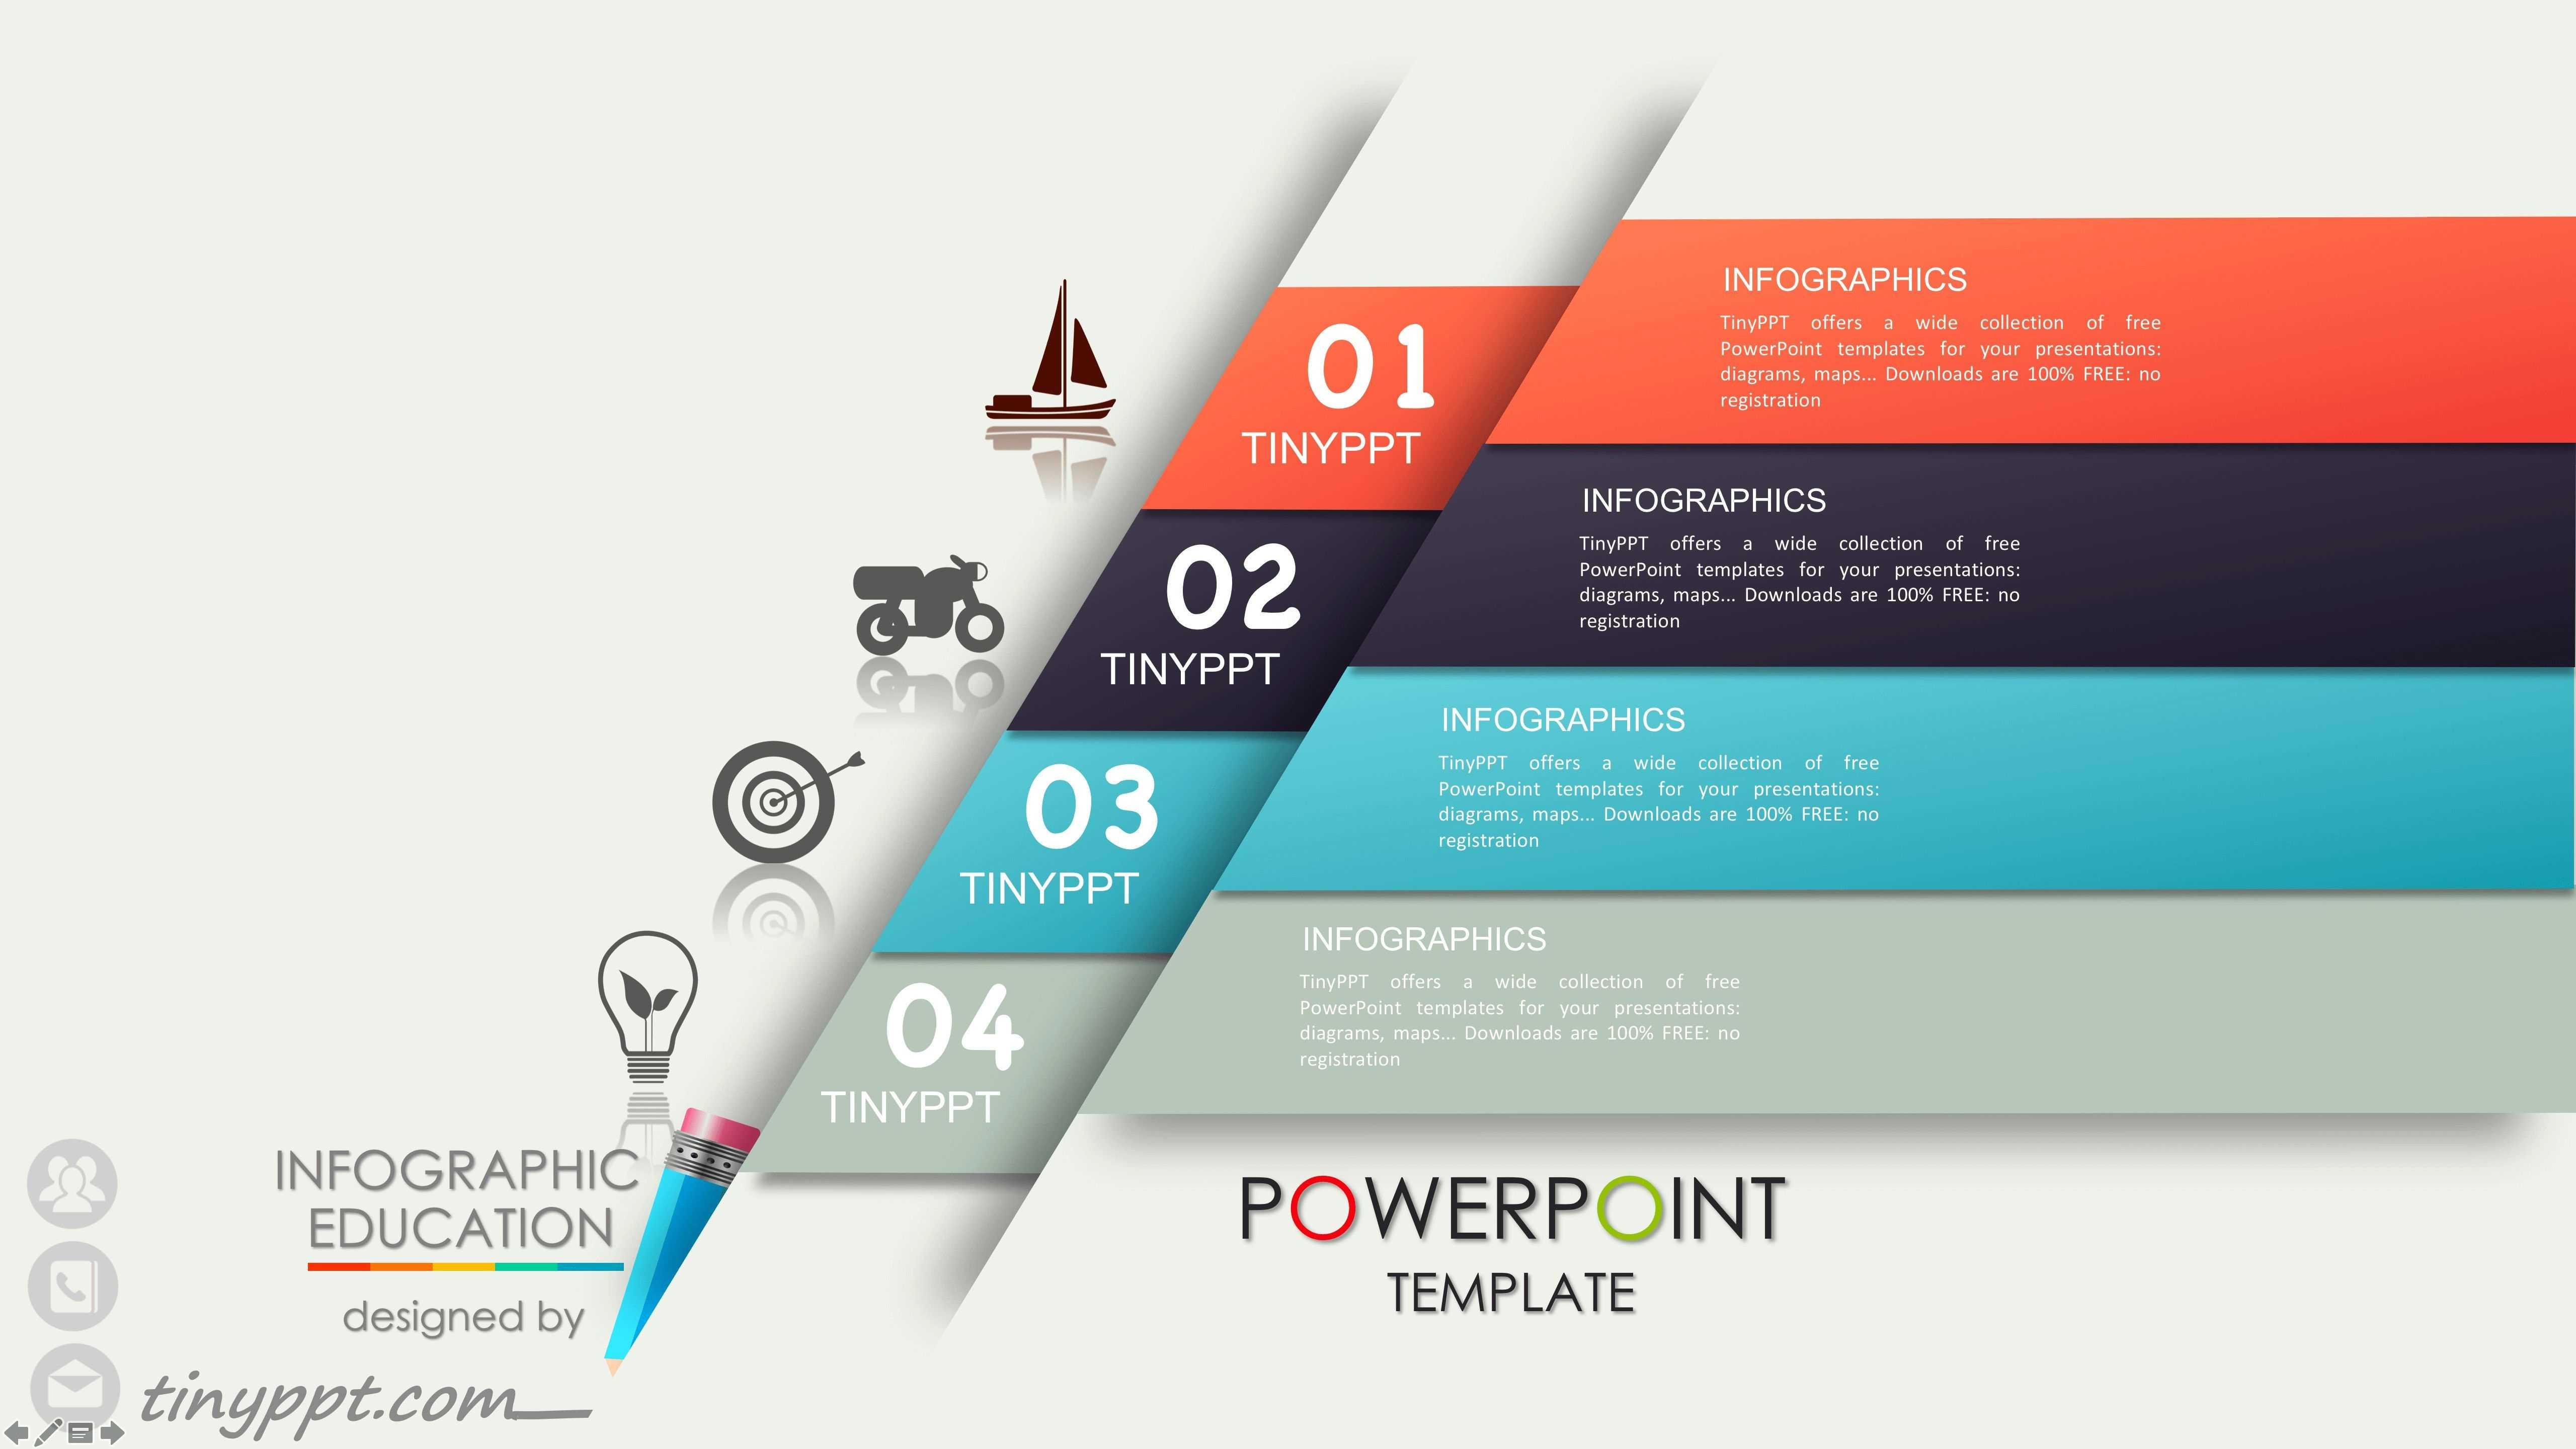 Free Download Templates For Powerpoint 2007 Business Simple Pertaining To Powerpoint 2007 Template Free Download